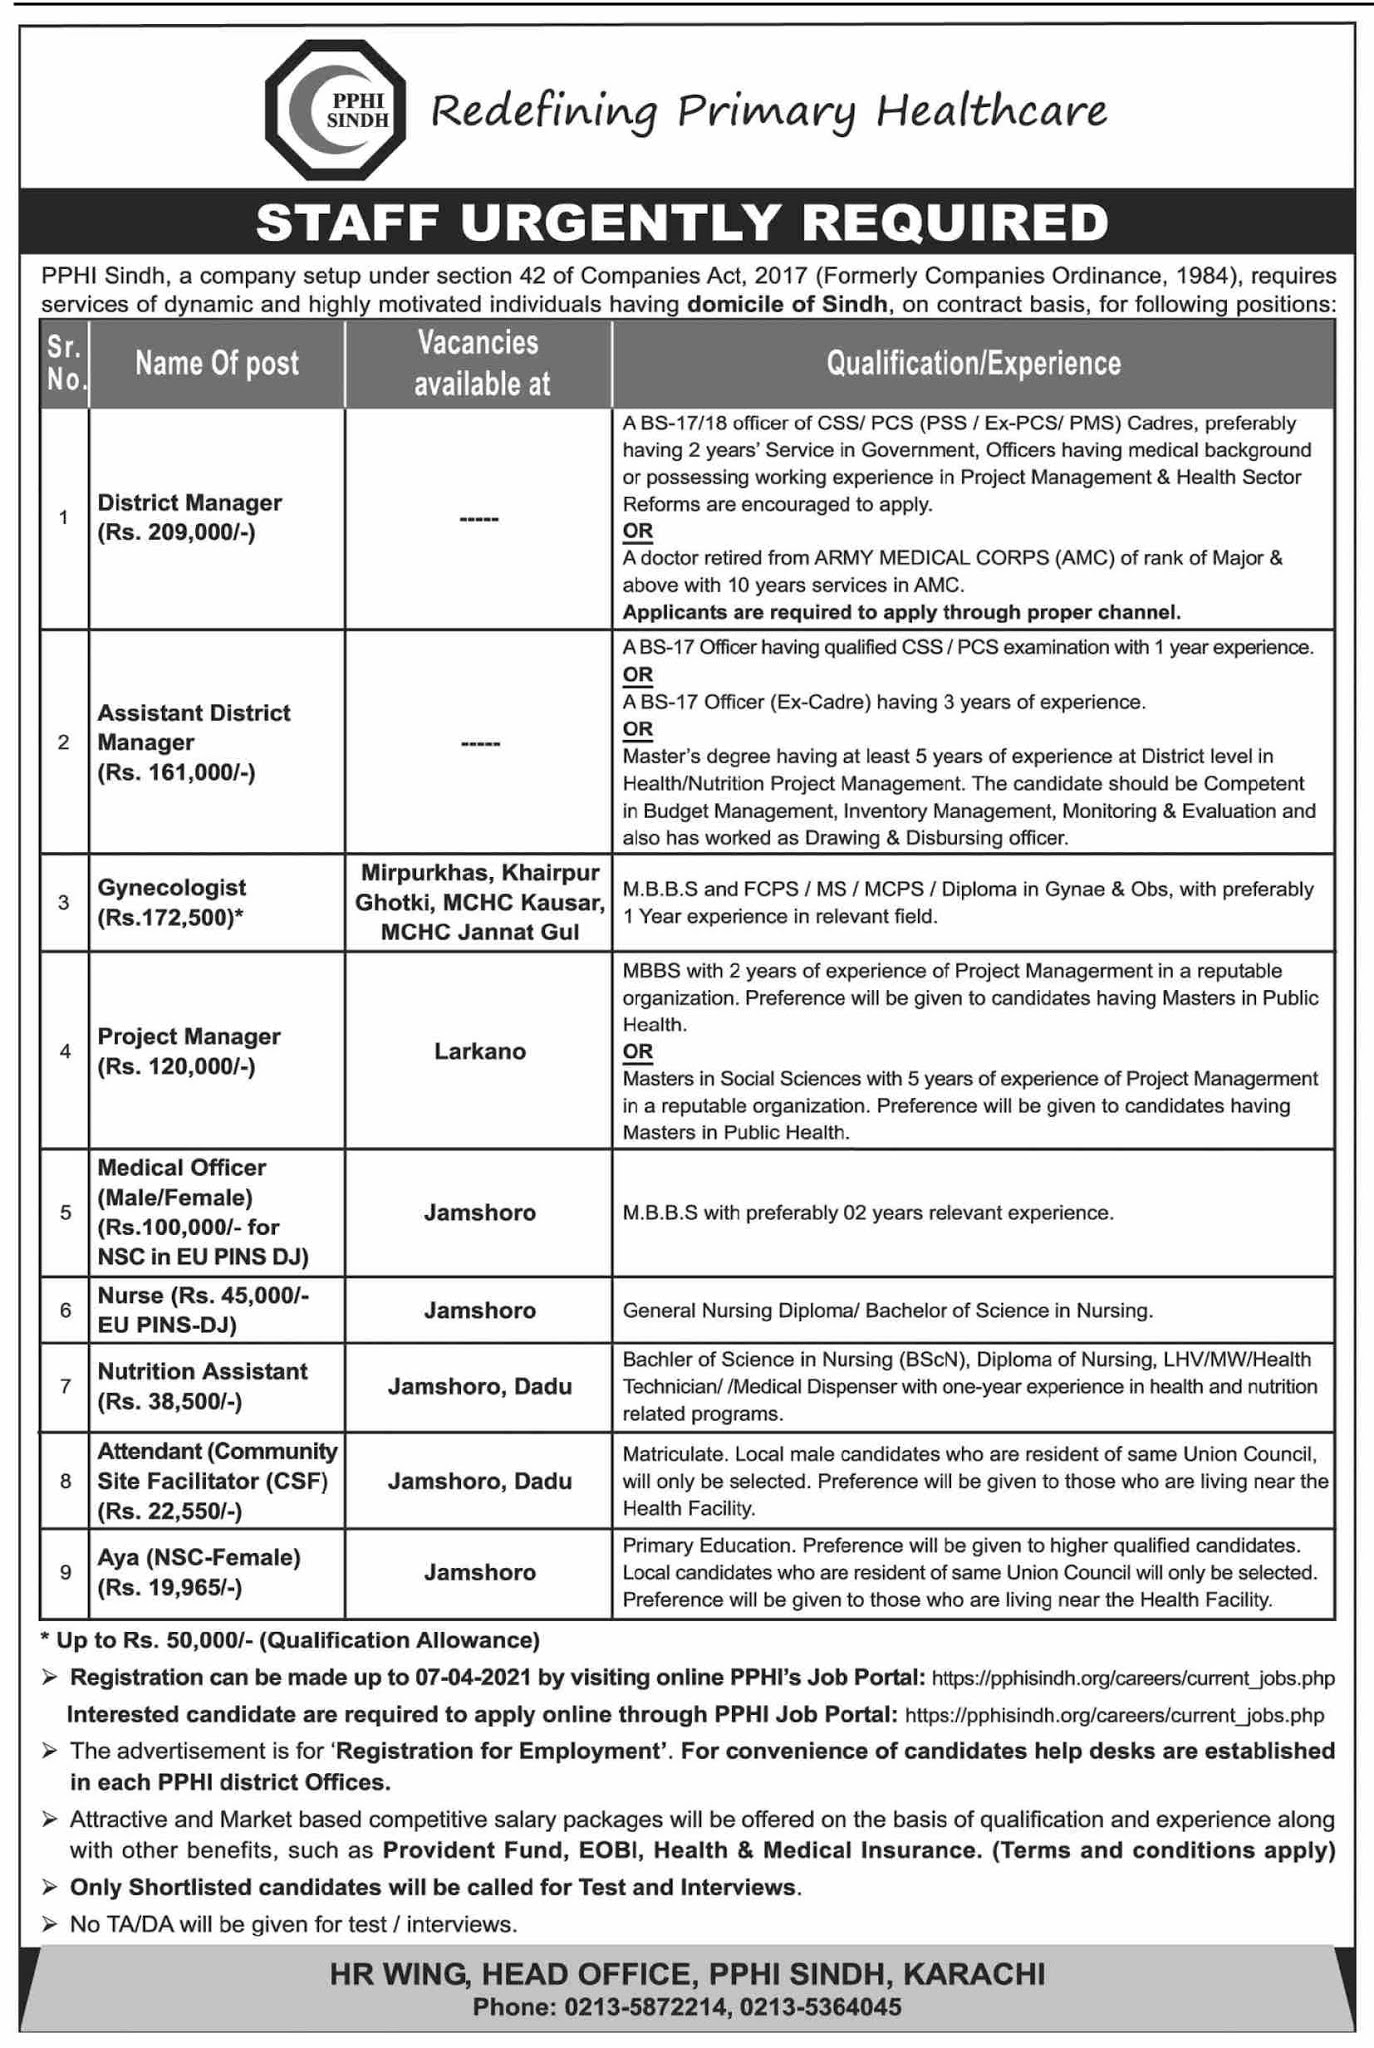 government,pphi sindh,district manager, assistant district manager, gynecologist, project manager, medical officer, nurse, nutrition assistant, attendant, aya,latest jobs,last date,requirements,application form,how to apply, jobs 2021,